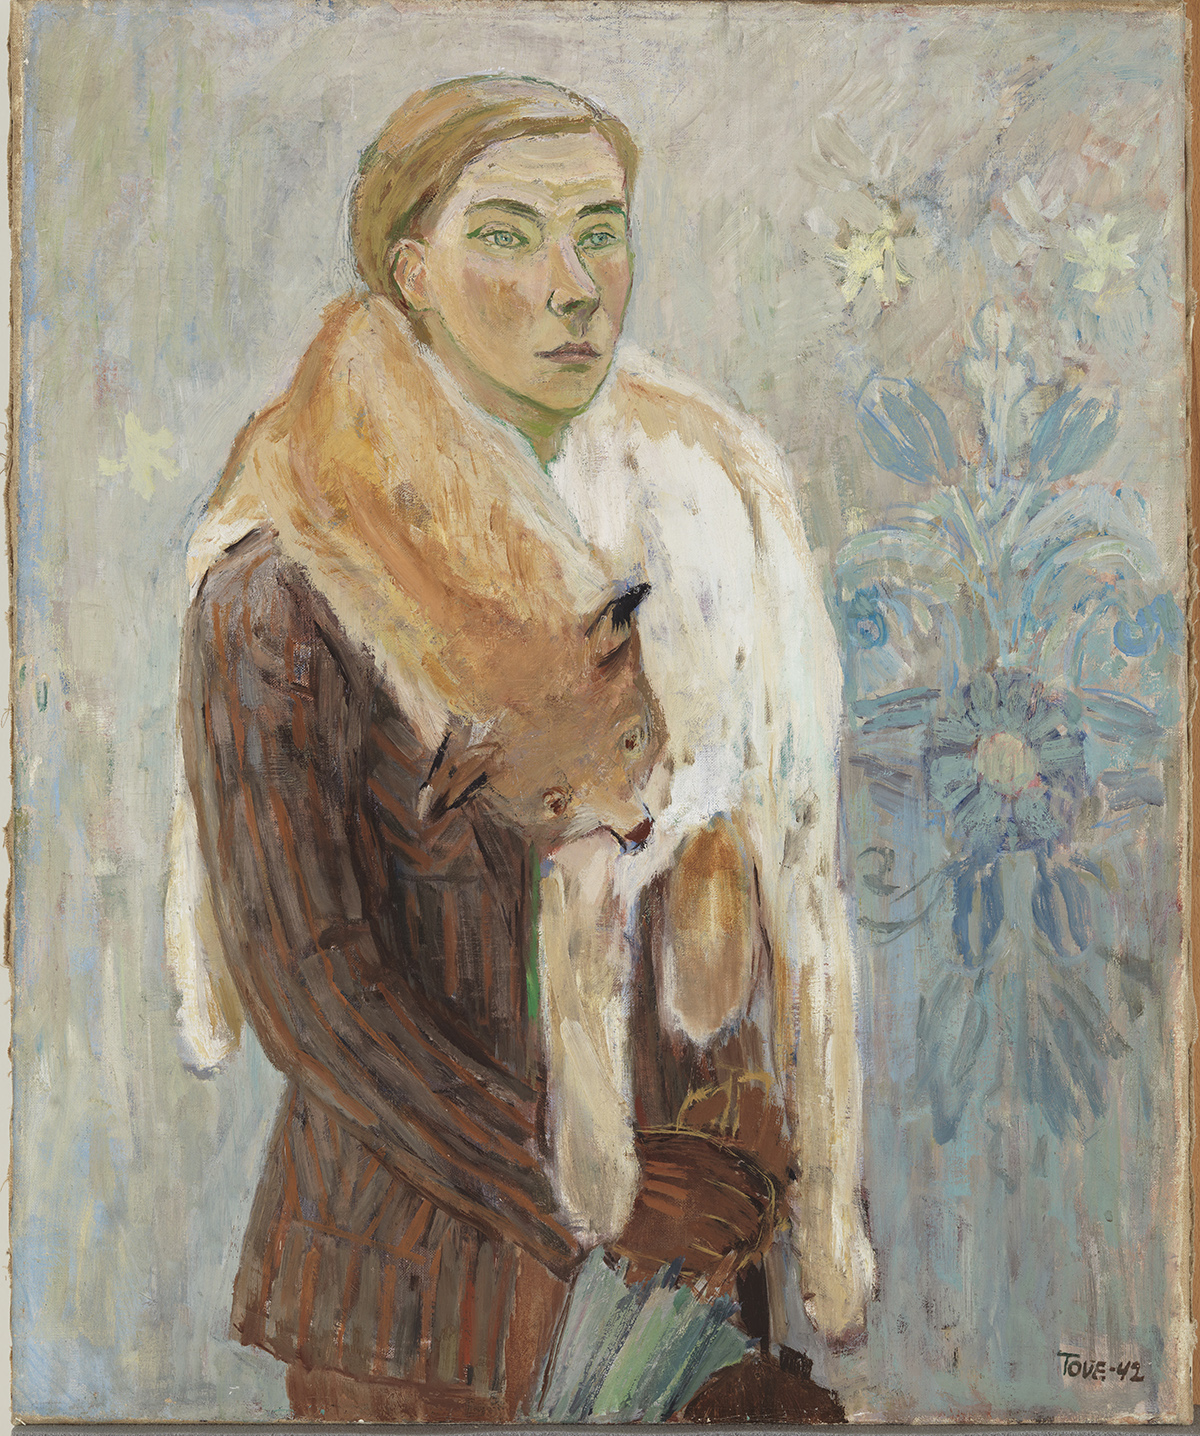 Moomins creator Tove Jansson at Dulwich - Creative Review